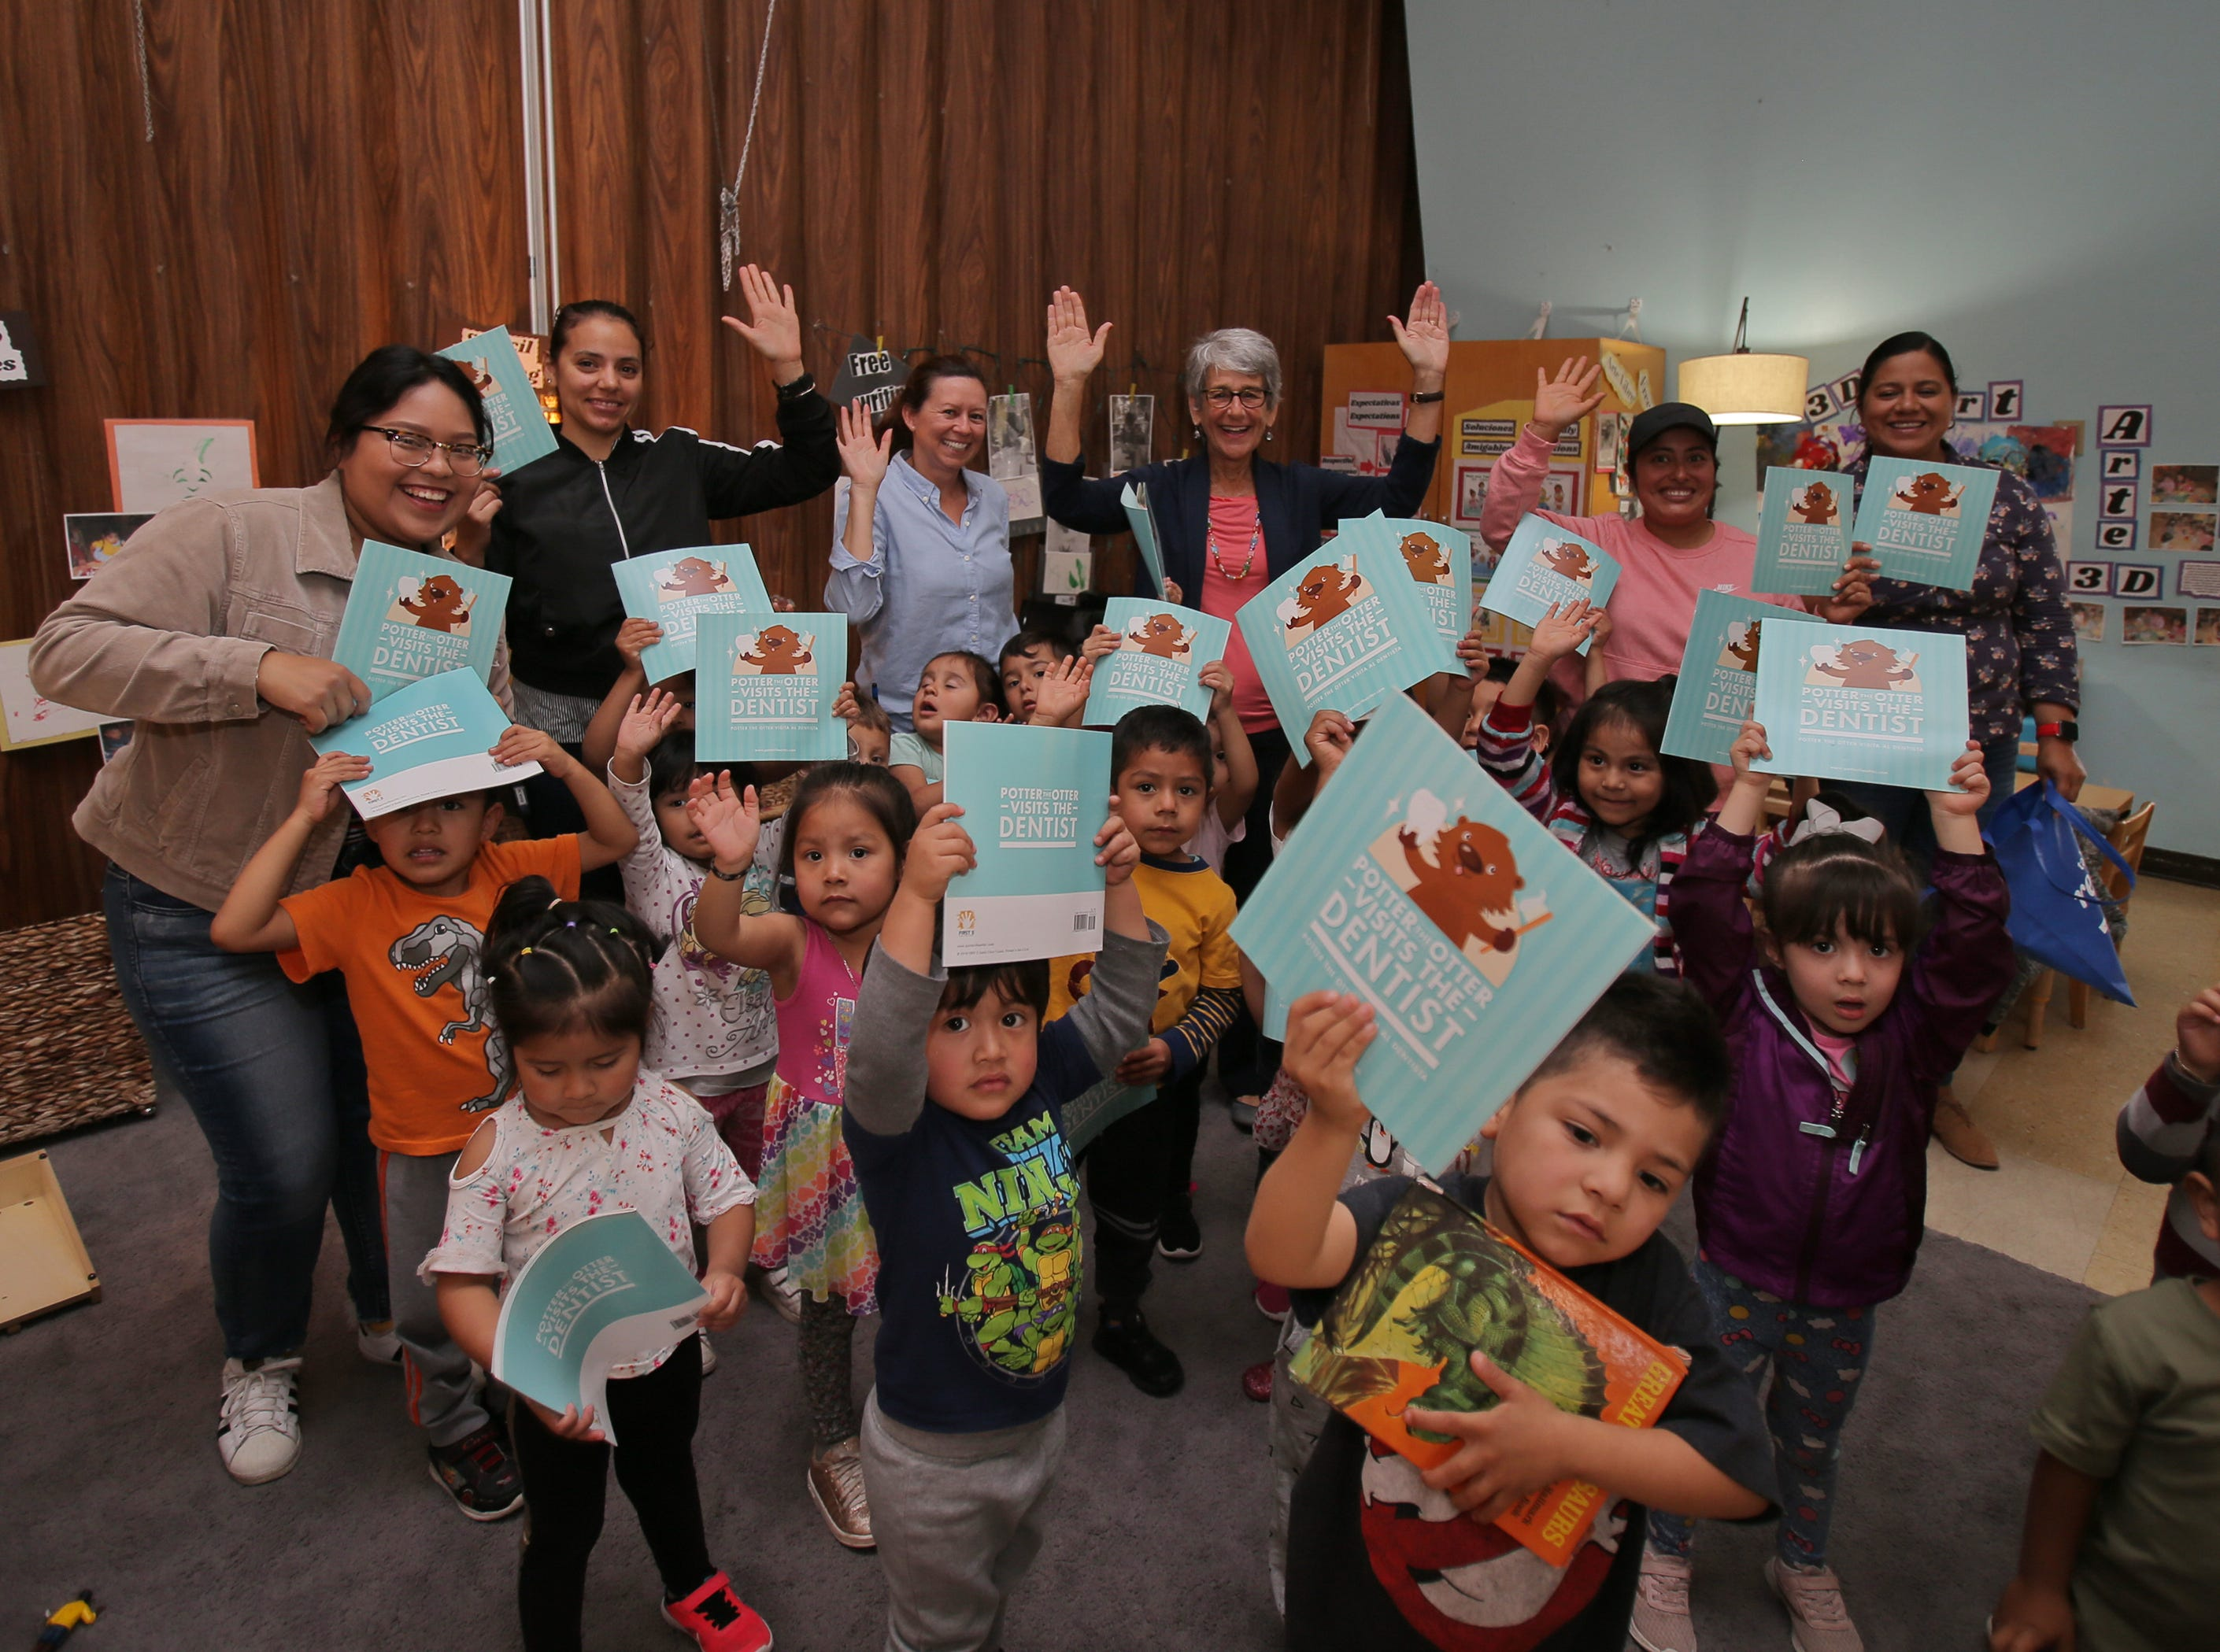 Sen. Hannah-Beth Jackson takes a photo with preschoolers after she read two books to them Friday at La Escuelita Child Development Center in Oxnard.